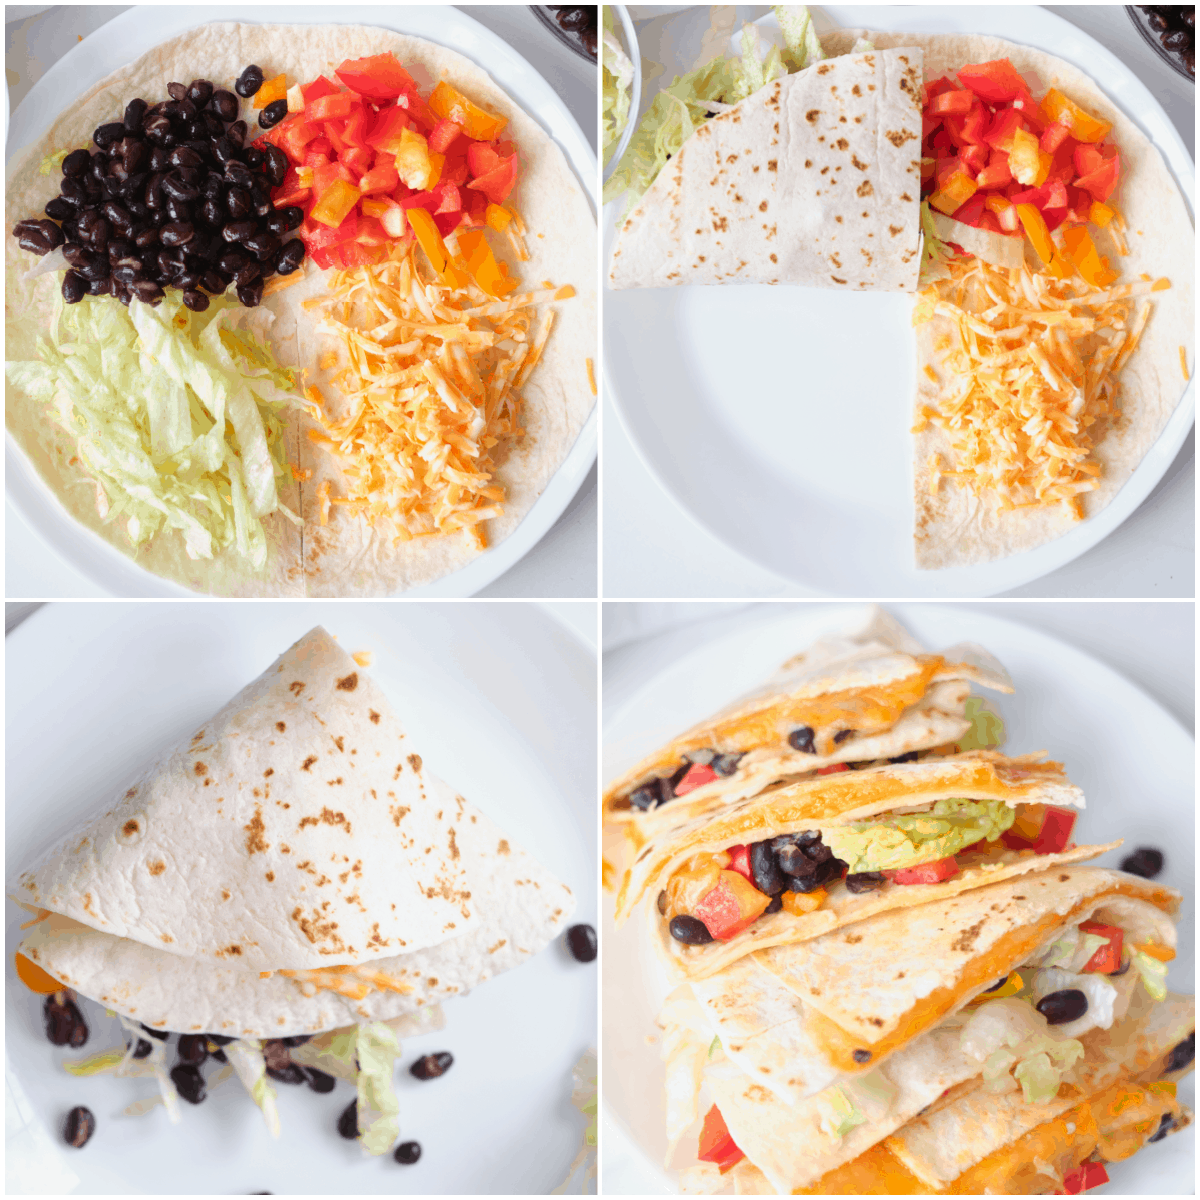 image collage showing the steps for making black bean quesadilla